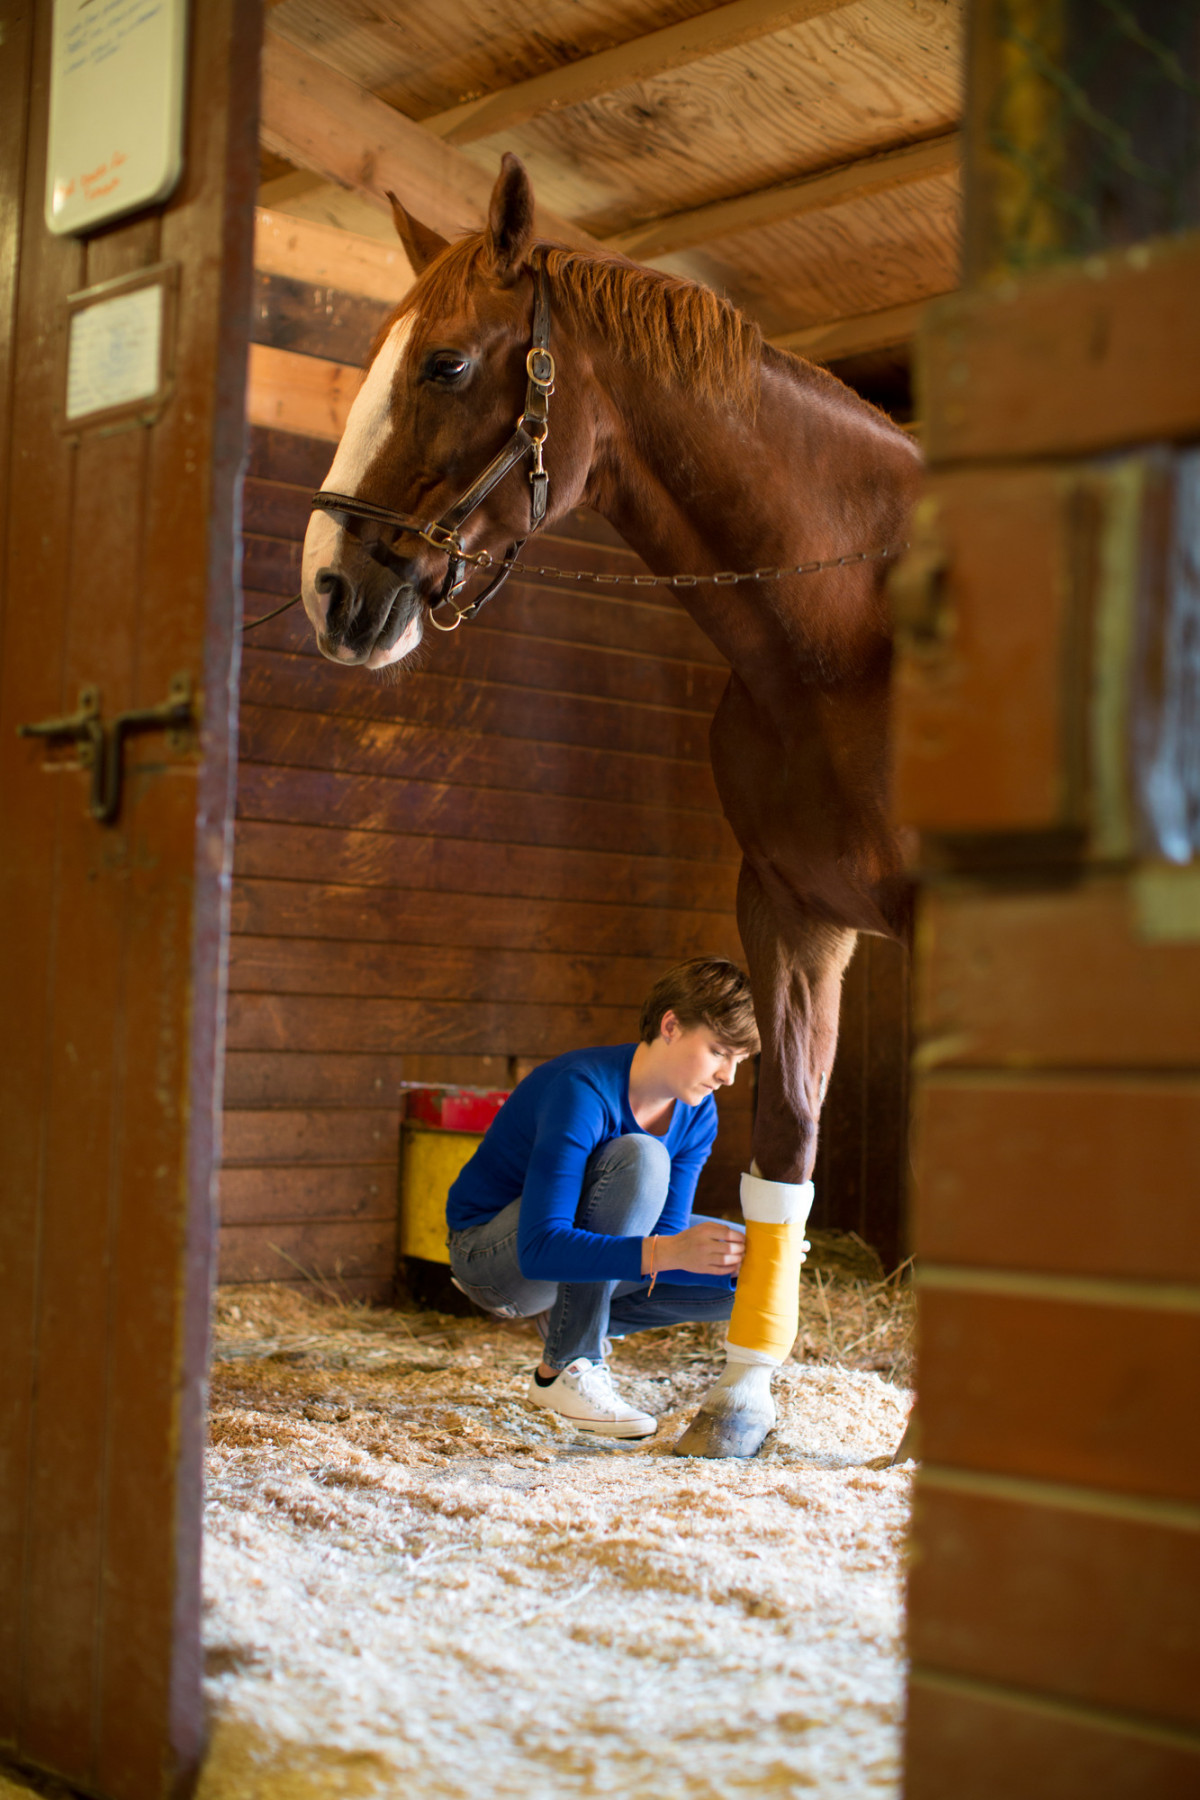 Student wrapping horse's leg in barn